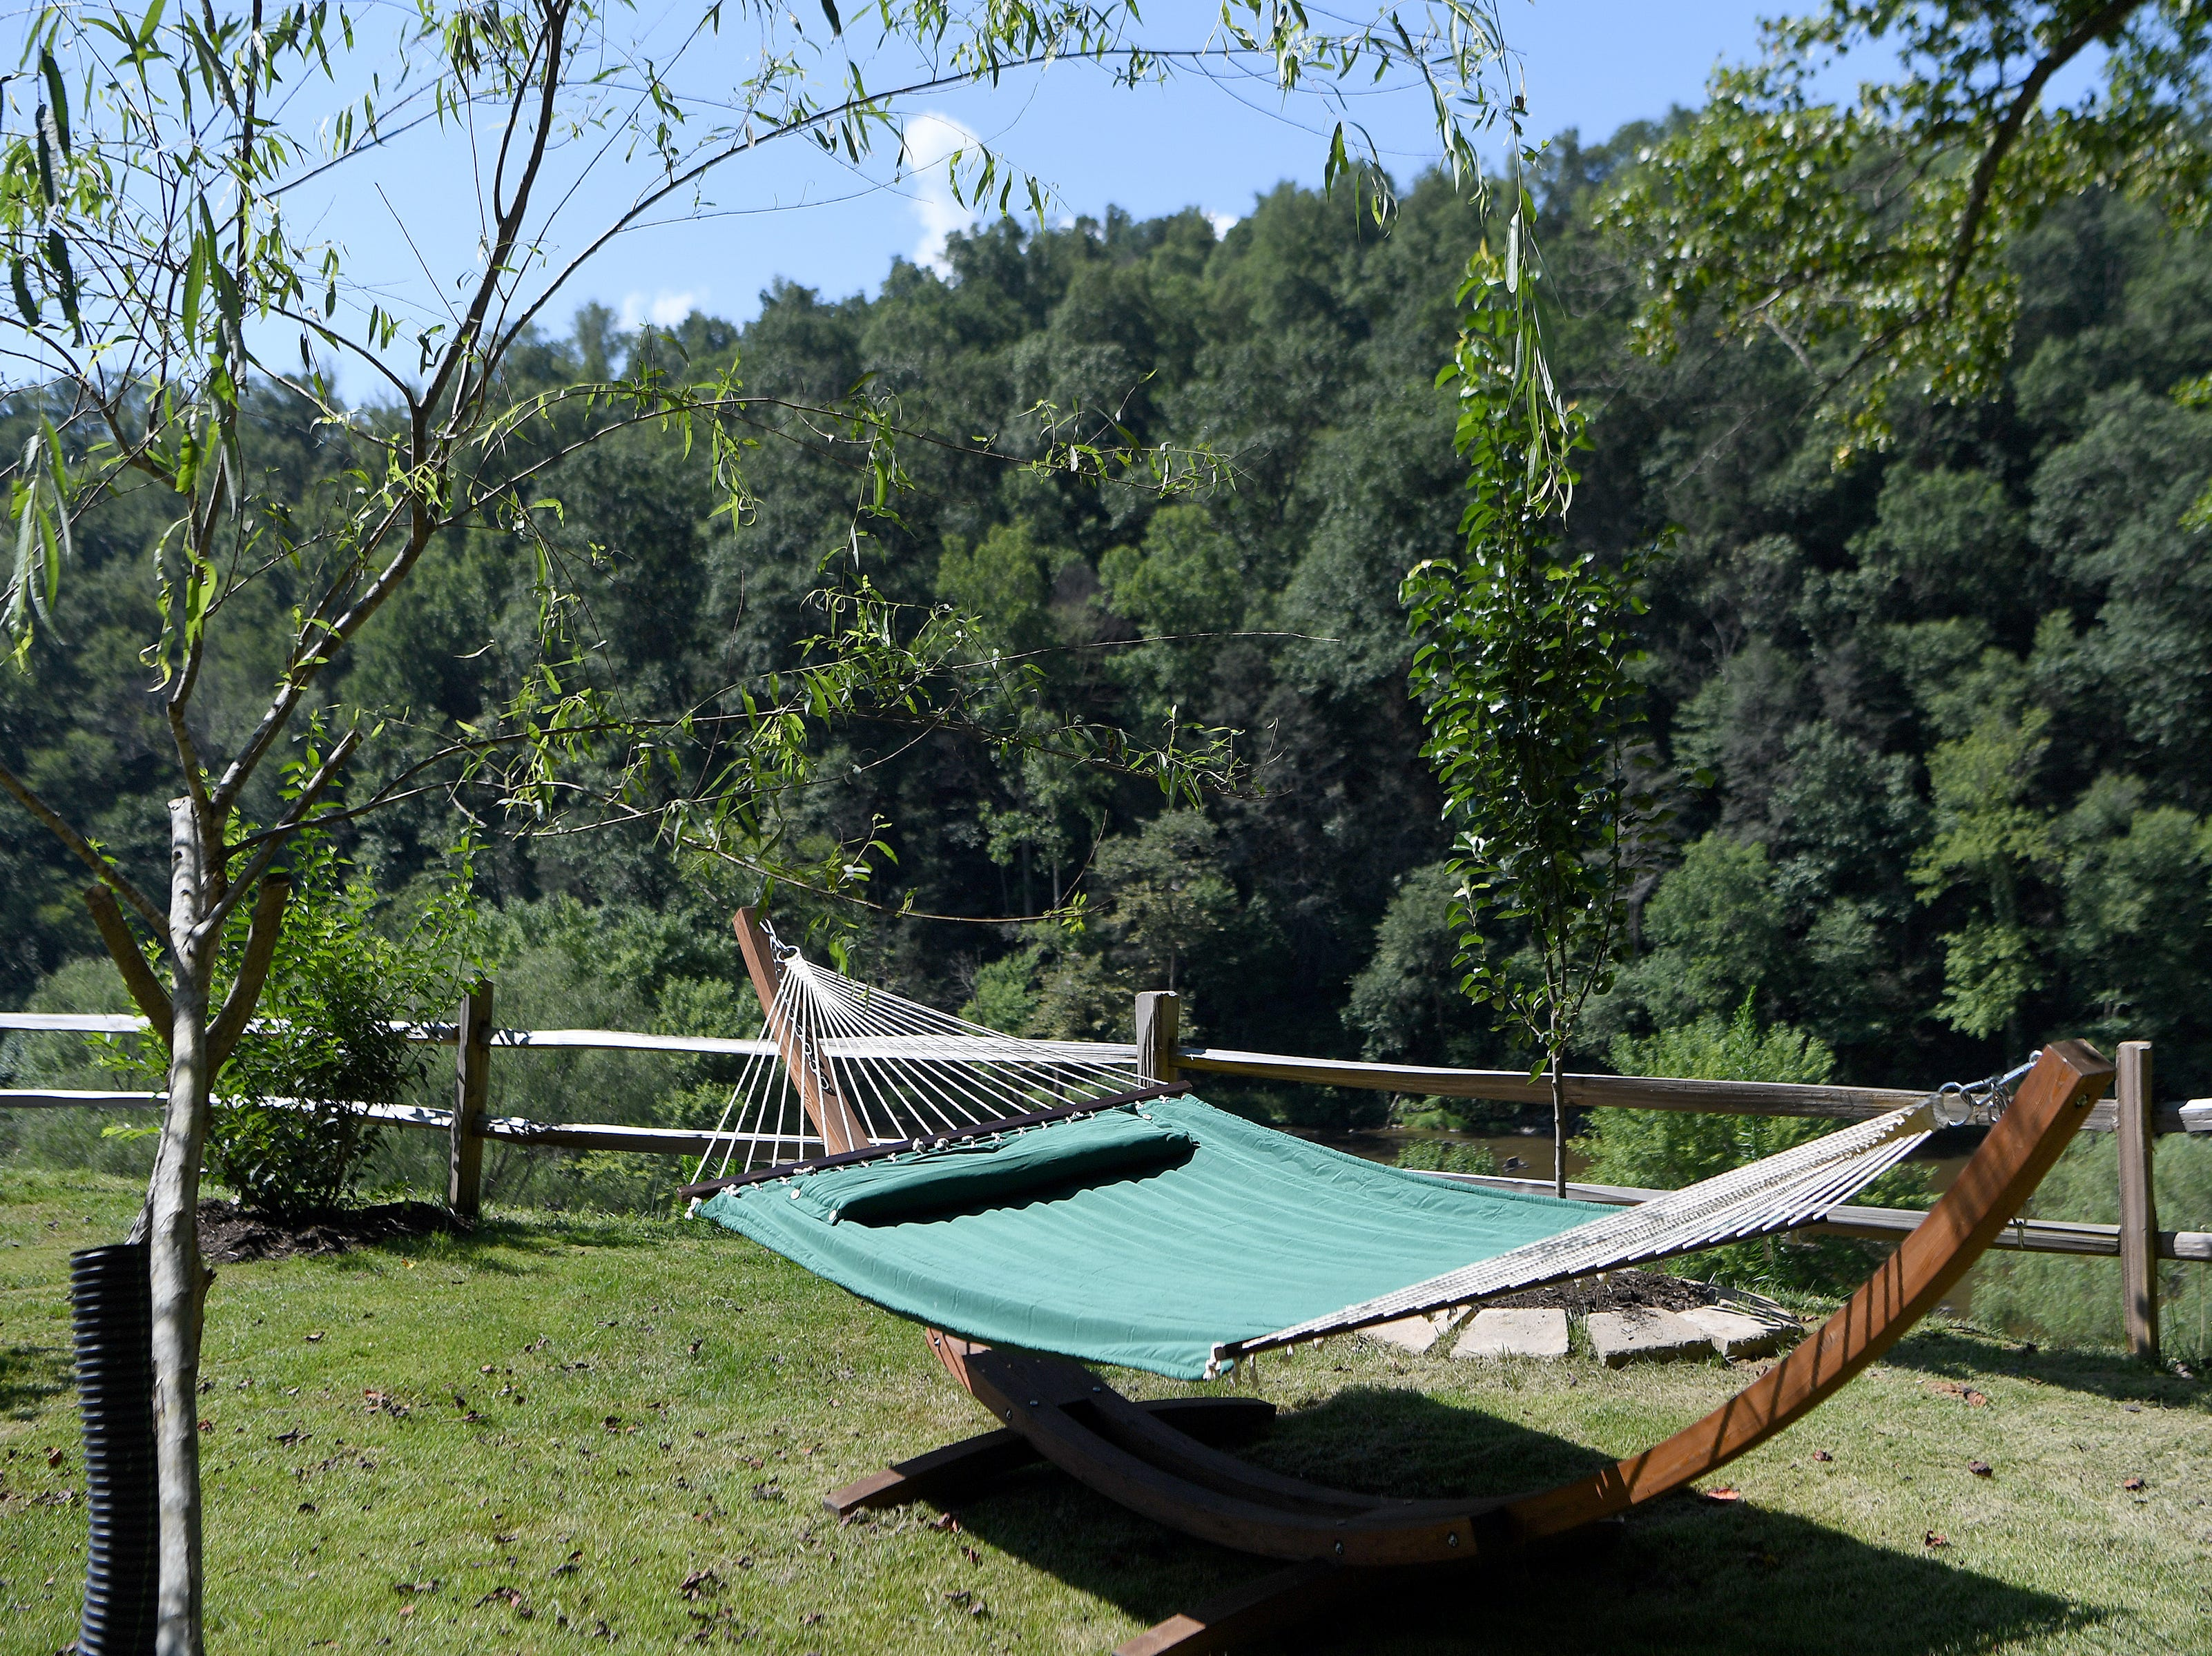 A relaxing hammock view outside of the Yin Yurt, an AirBnB rental on Ricardo Fernandez's property in Clyde.